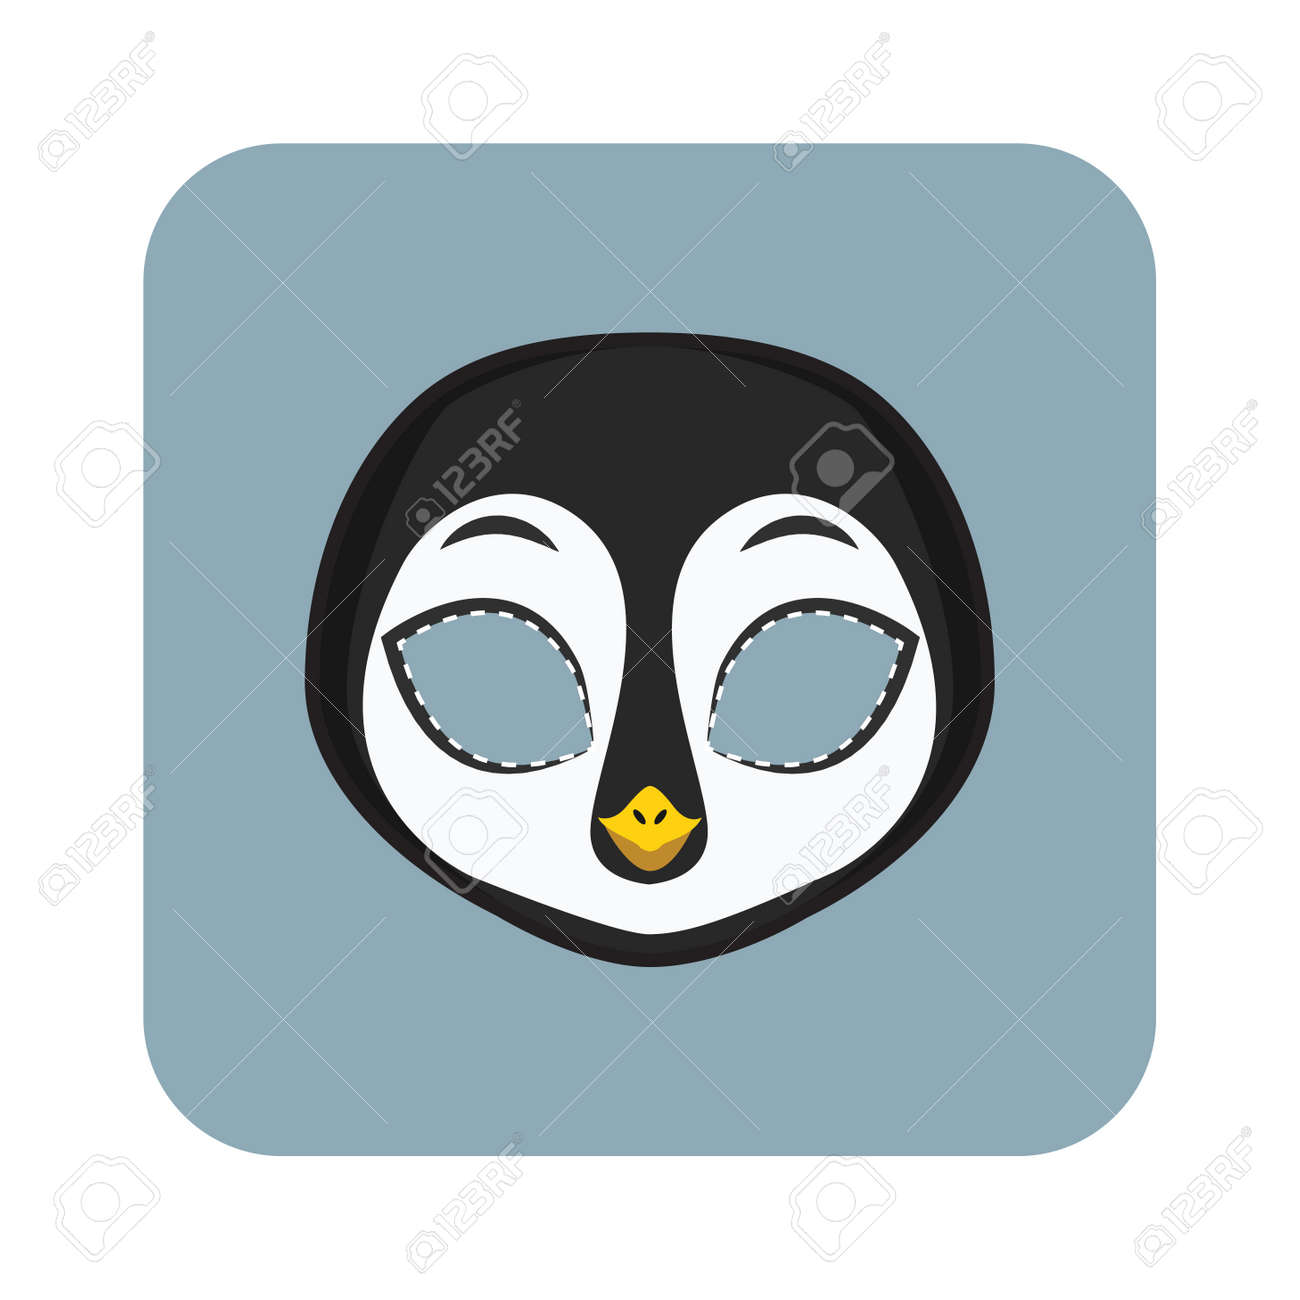 Penguin Mask For Halloween And Other Festivities